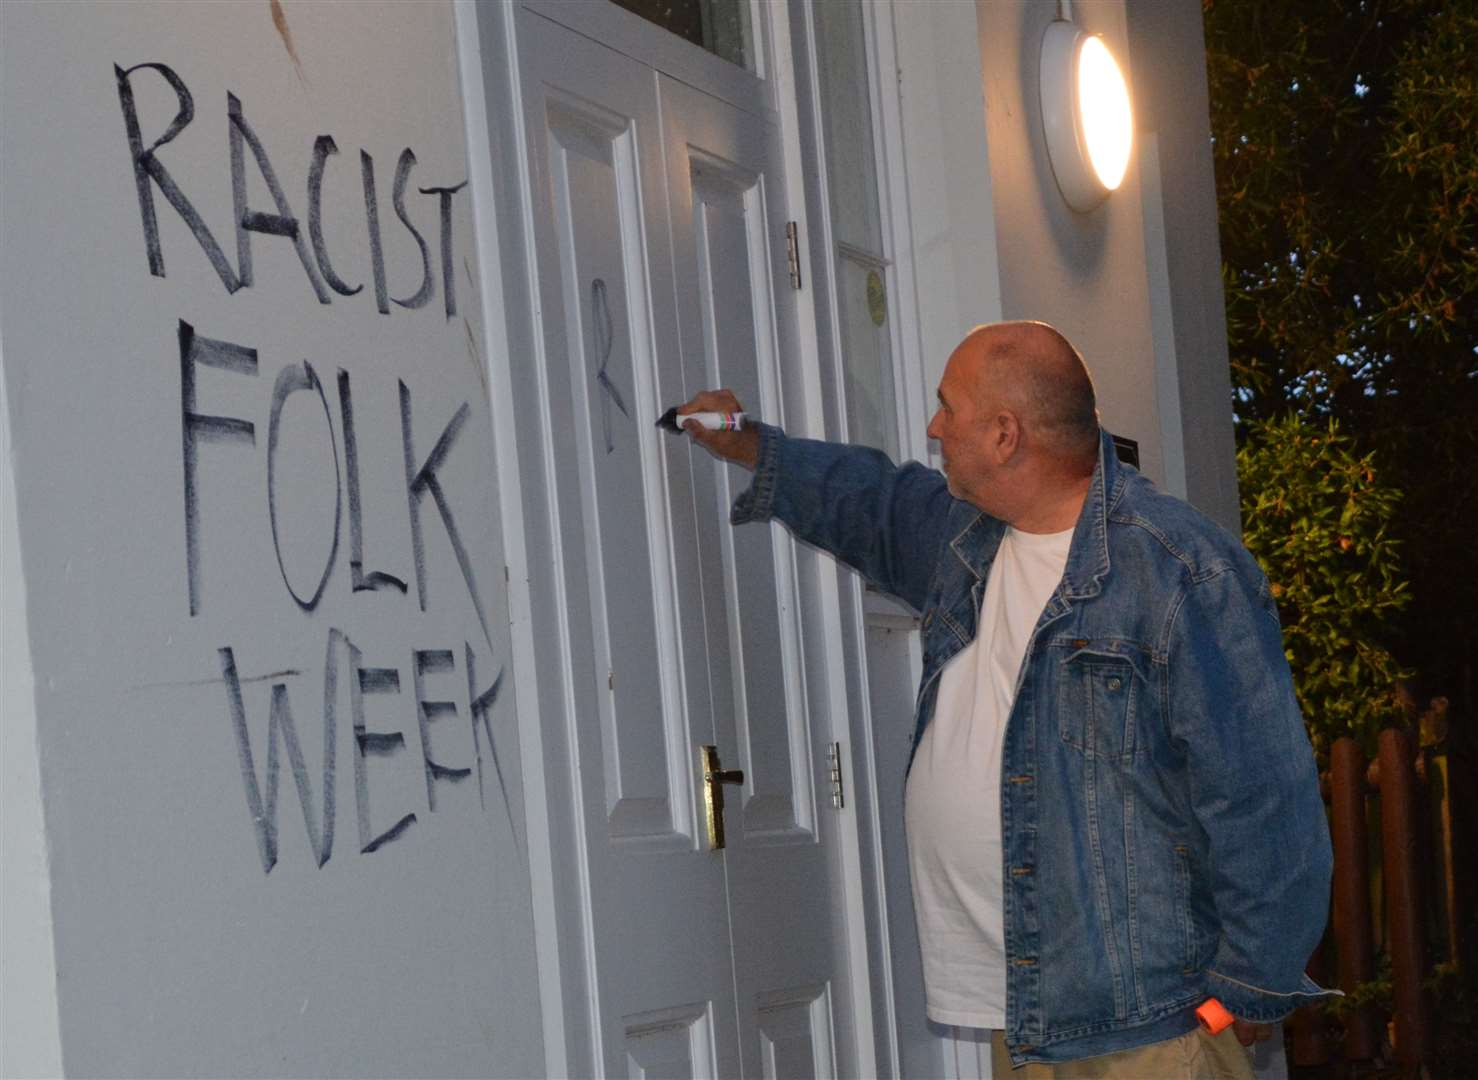 Former councillor Ian Driver says he is responsible for the graffiti. Picture: Ian Driver